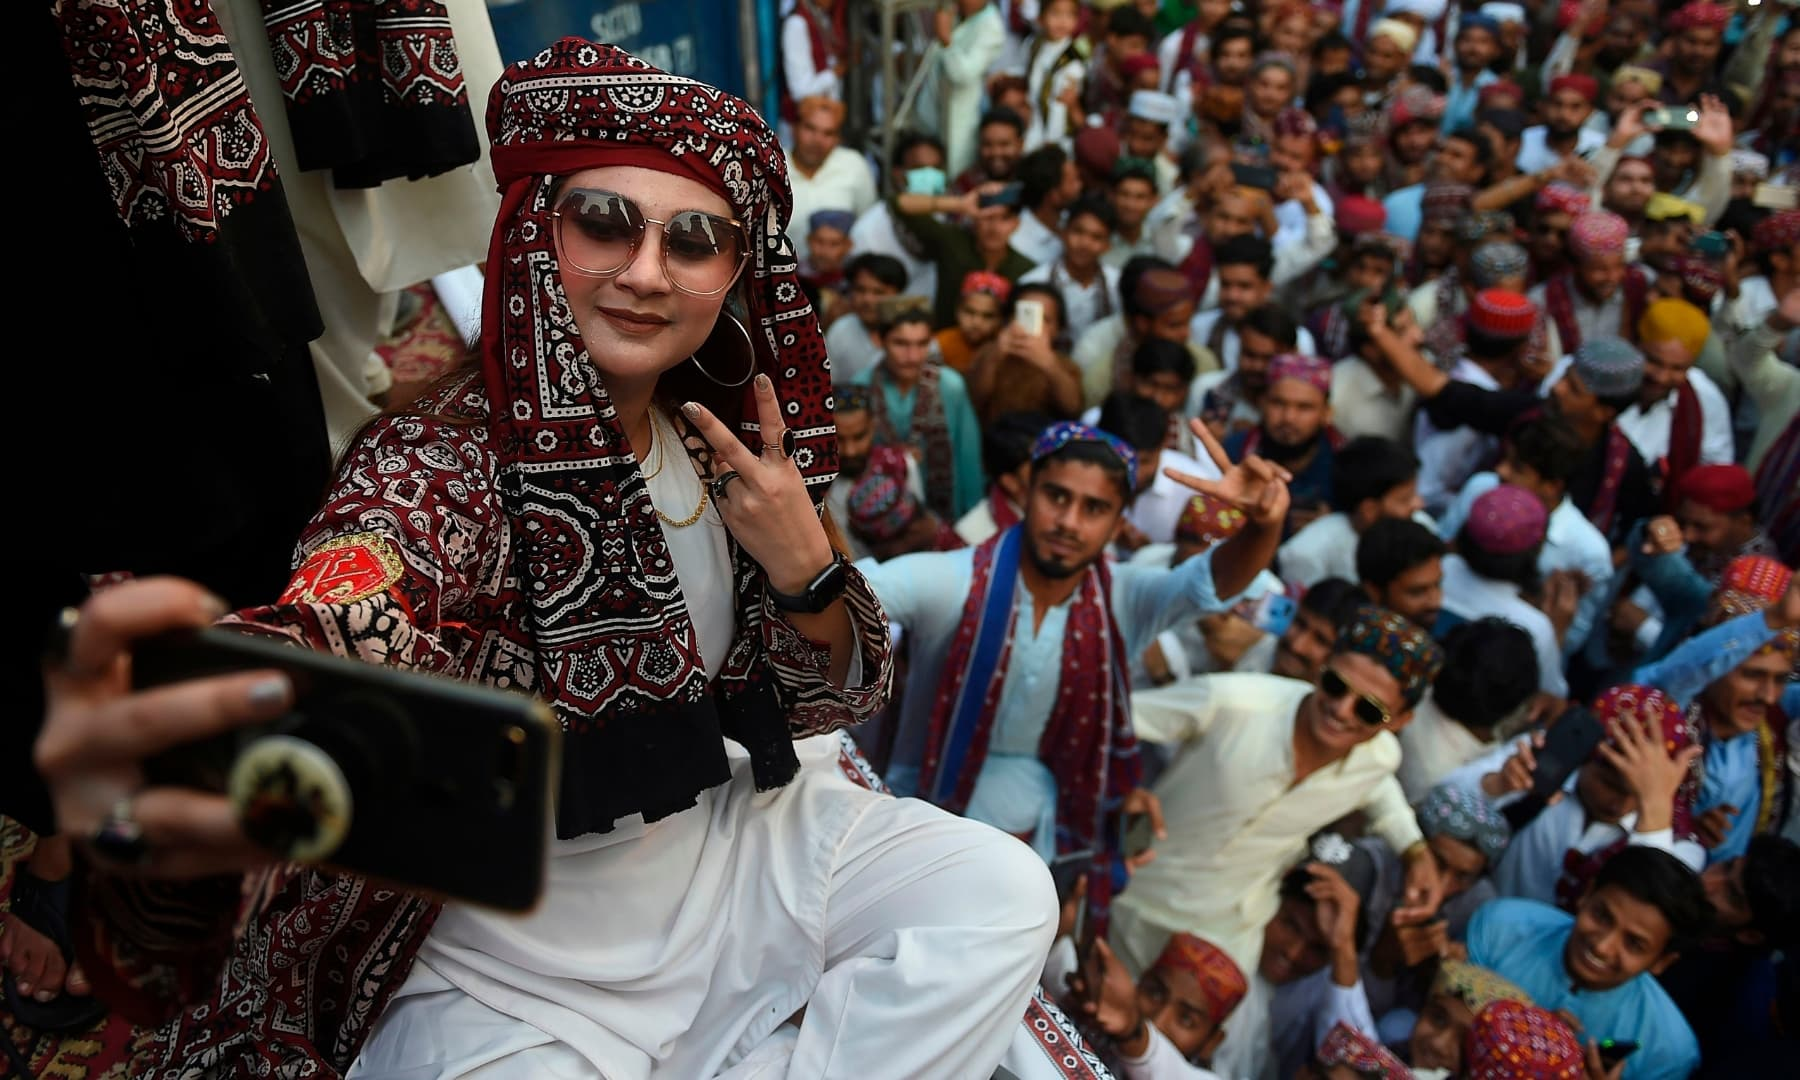 A woman wearing traditional a dress takes a selfie picture as she celebrates during Sindh Culture Day in Karachi. — AFP